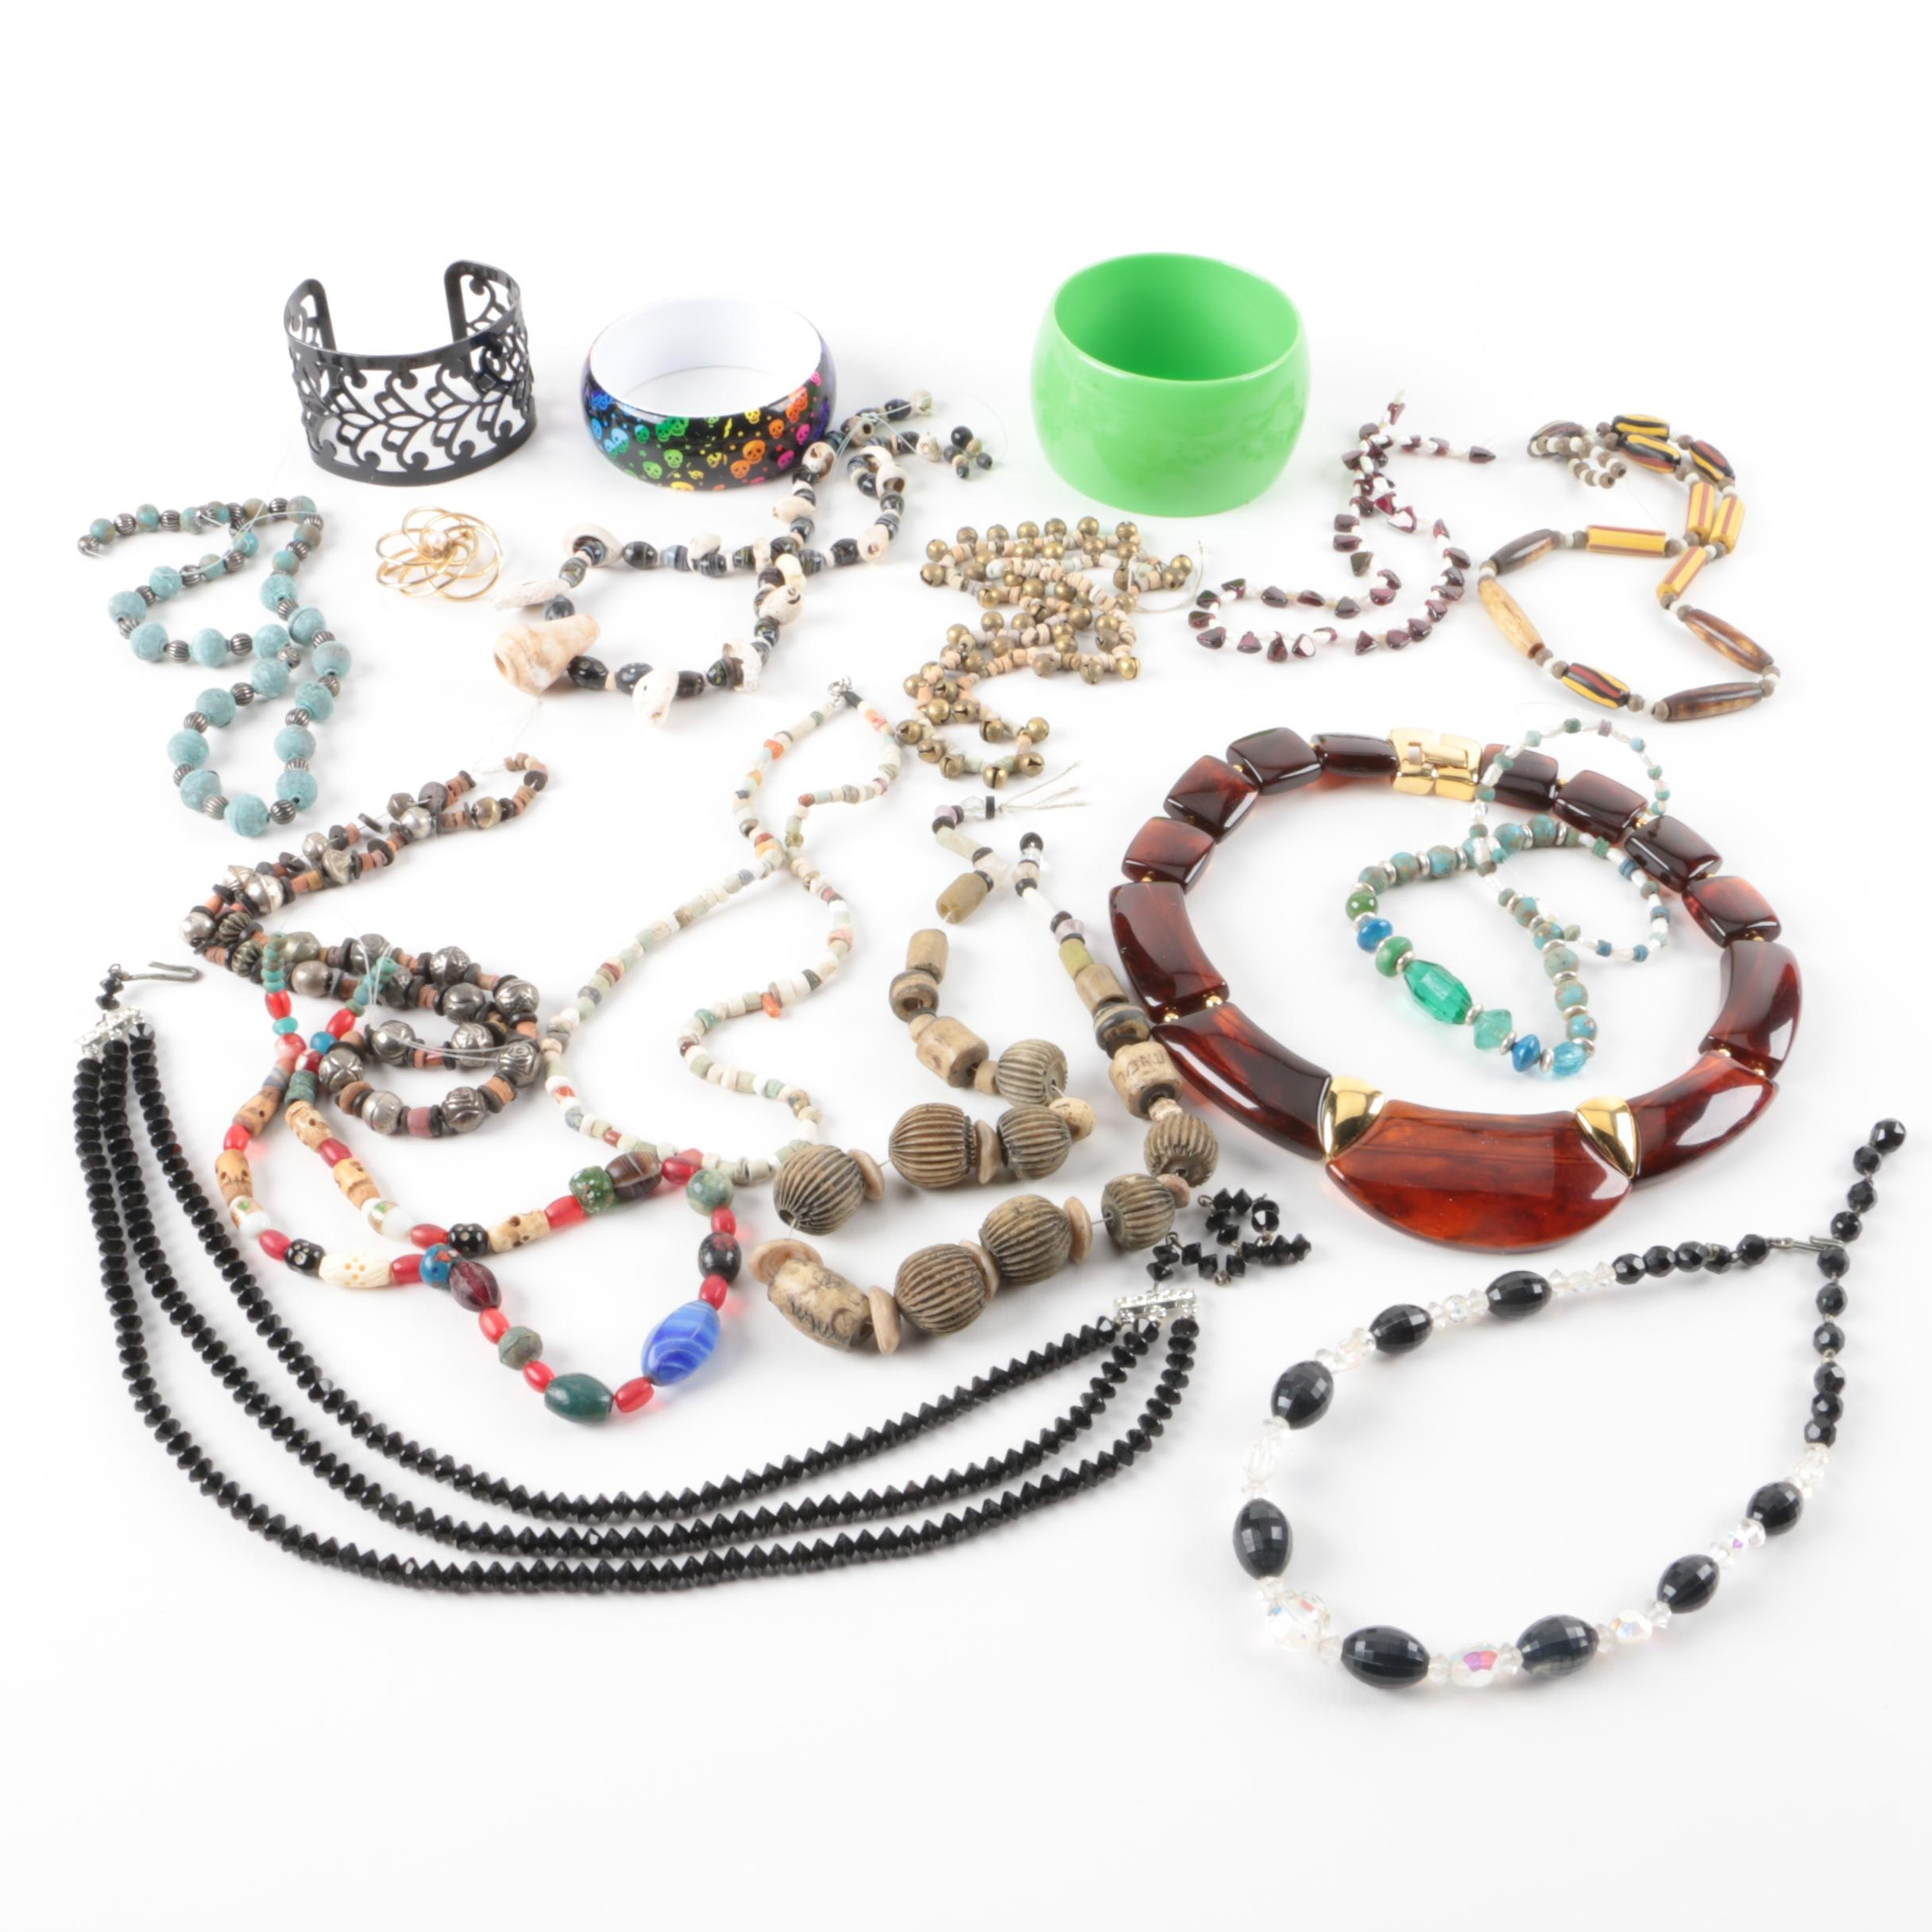 Assortment of Beaded Necklaces and Bracelets